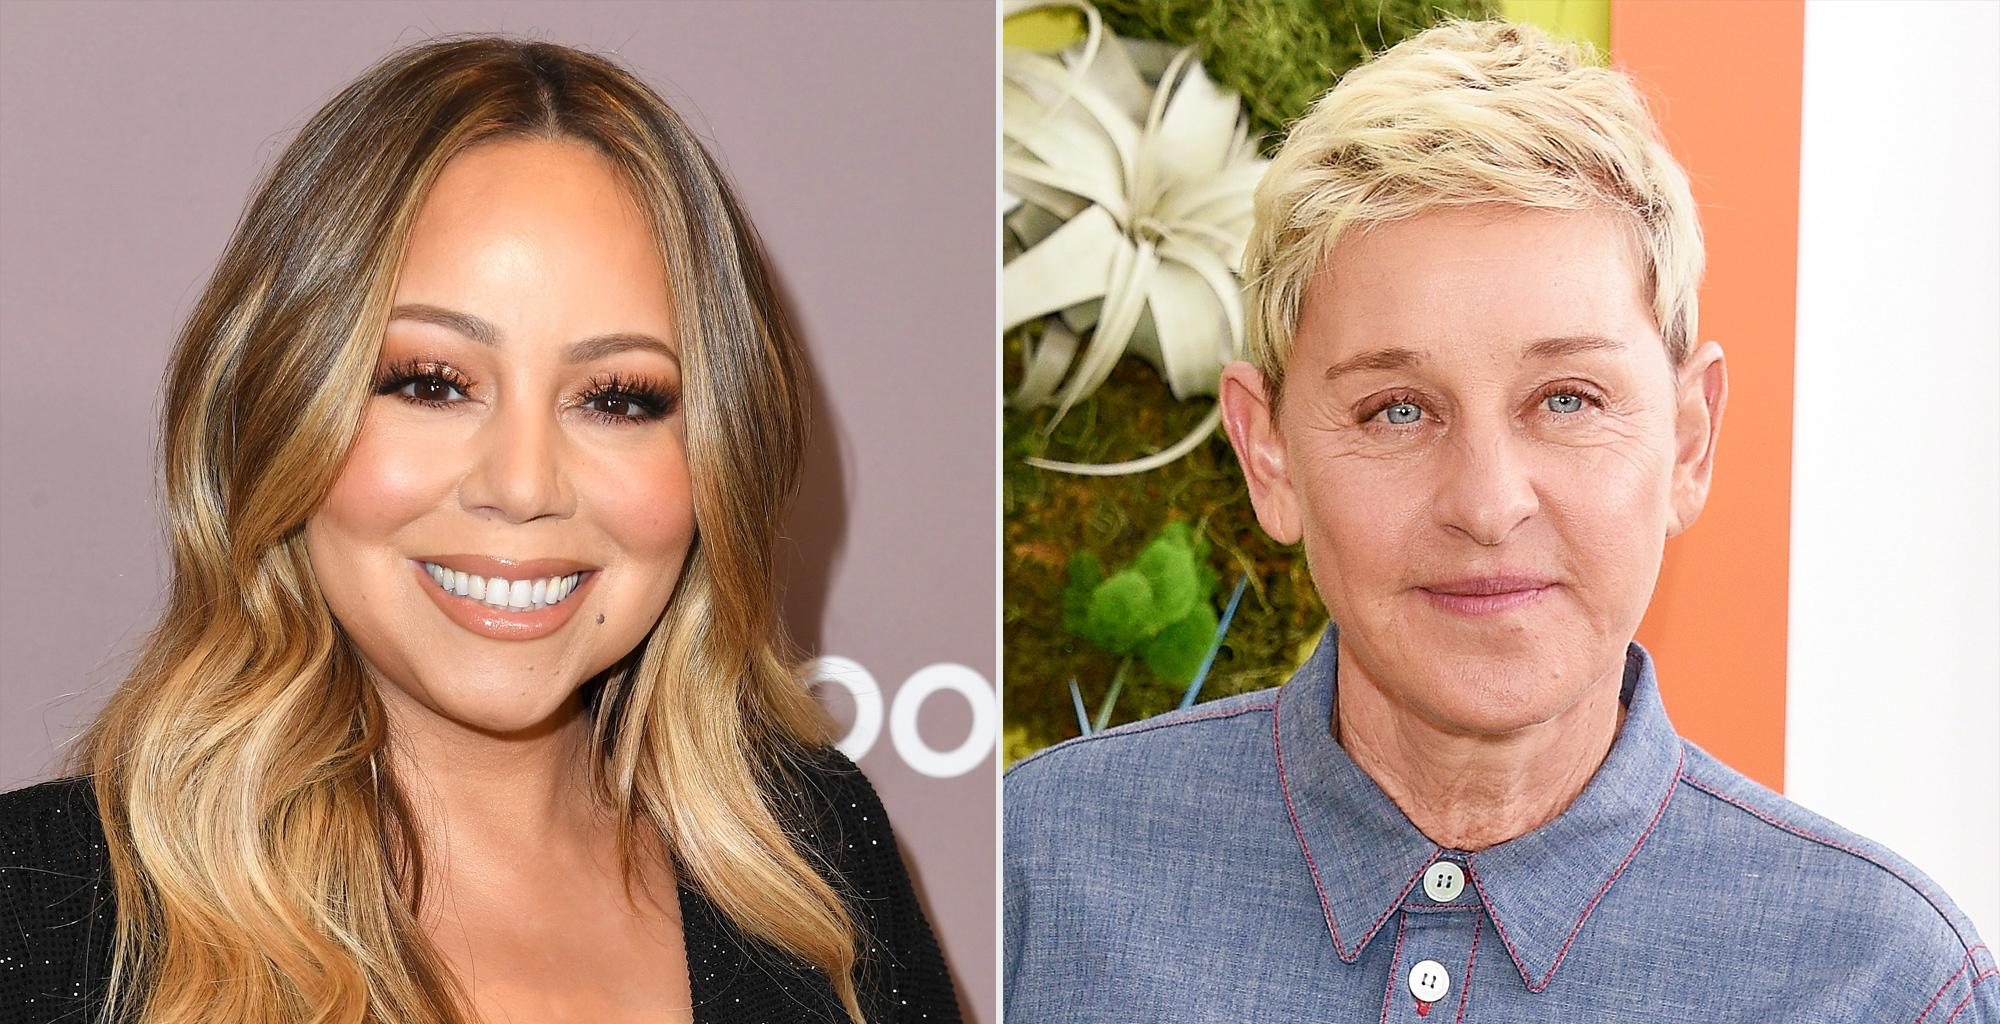 Mariah Carey Says Ellen DeGeneres Made Her 'Extremely Uncomfortable' At Her Show